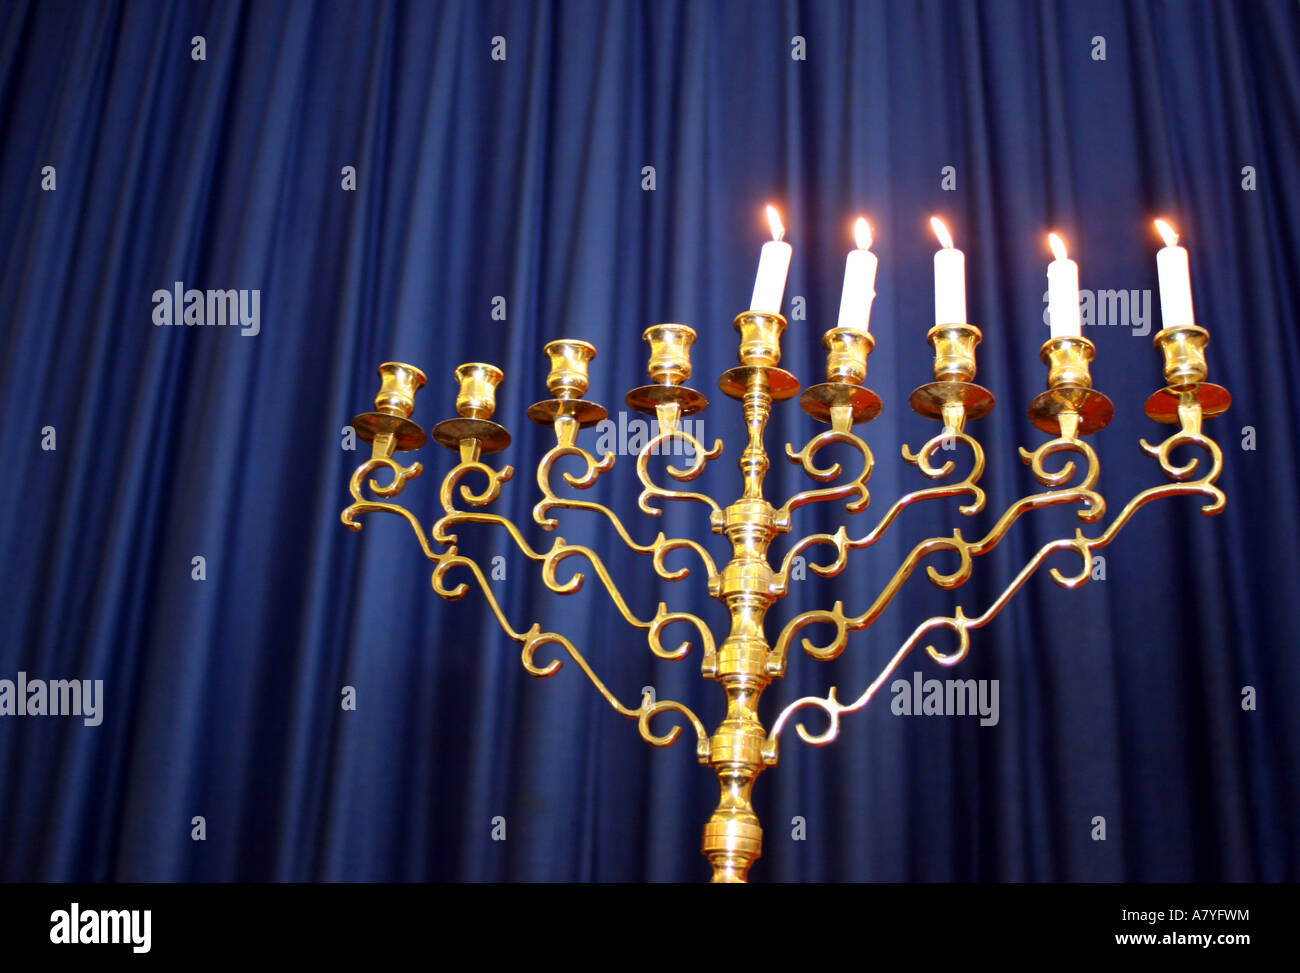 Blue curtain backdrop - Partially Lit Hanukkah Menorah Against A Blue Curtain Backdrop